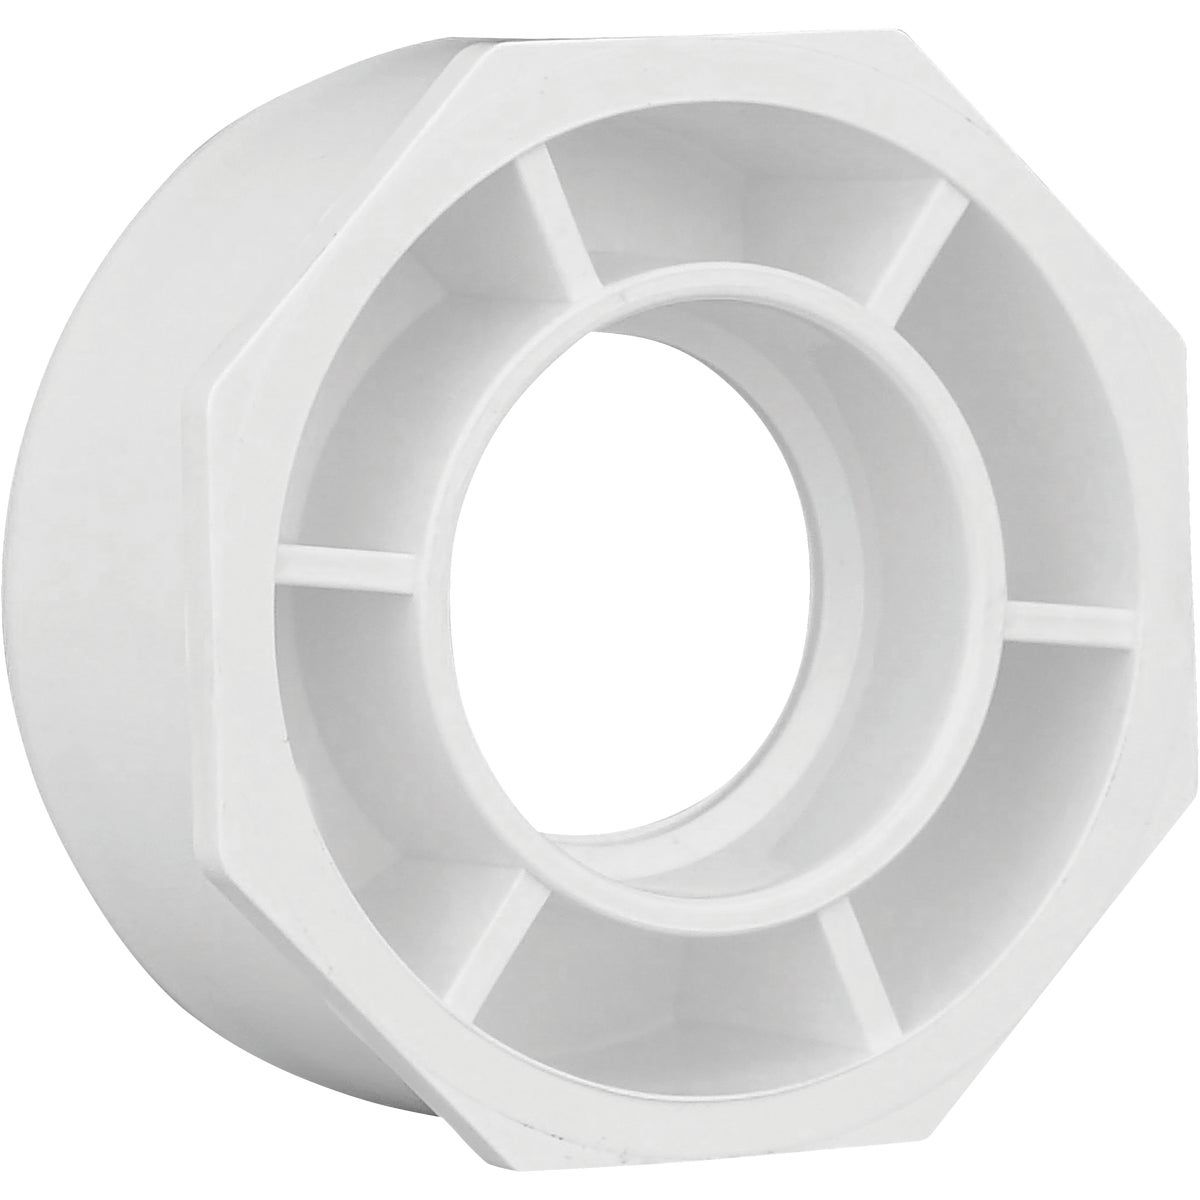 "4""X2"" DWV RED BUSHING - 70242 by Genova Inc  Pvc Dwv"